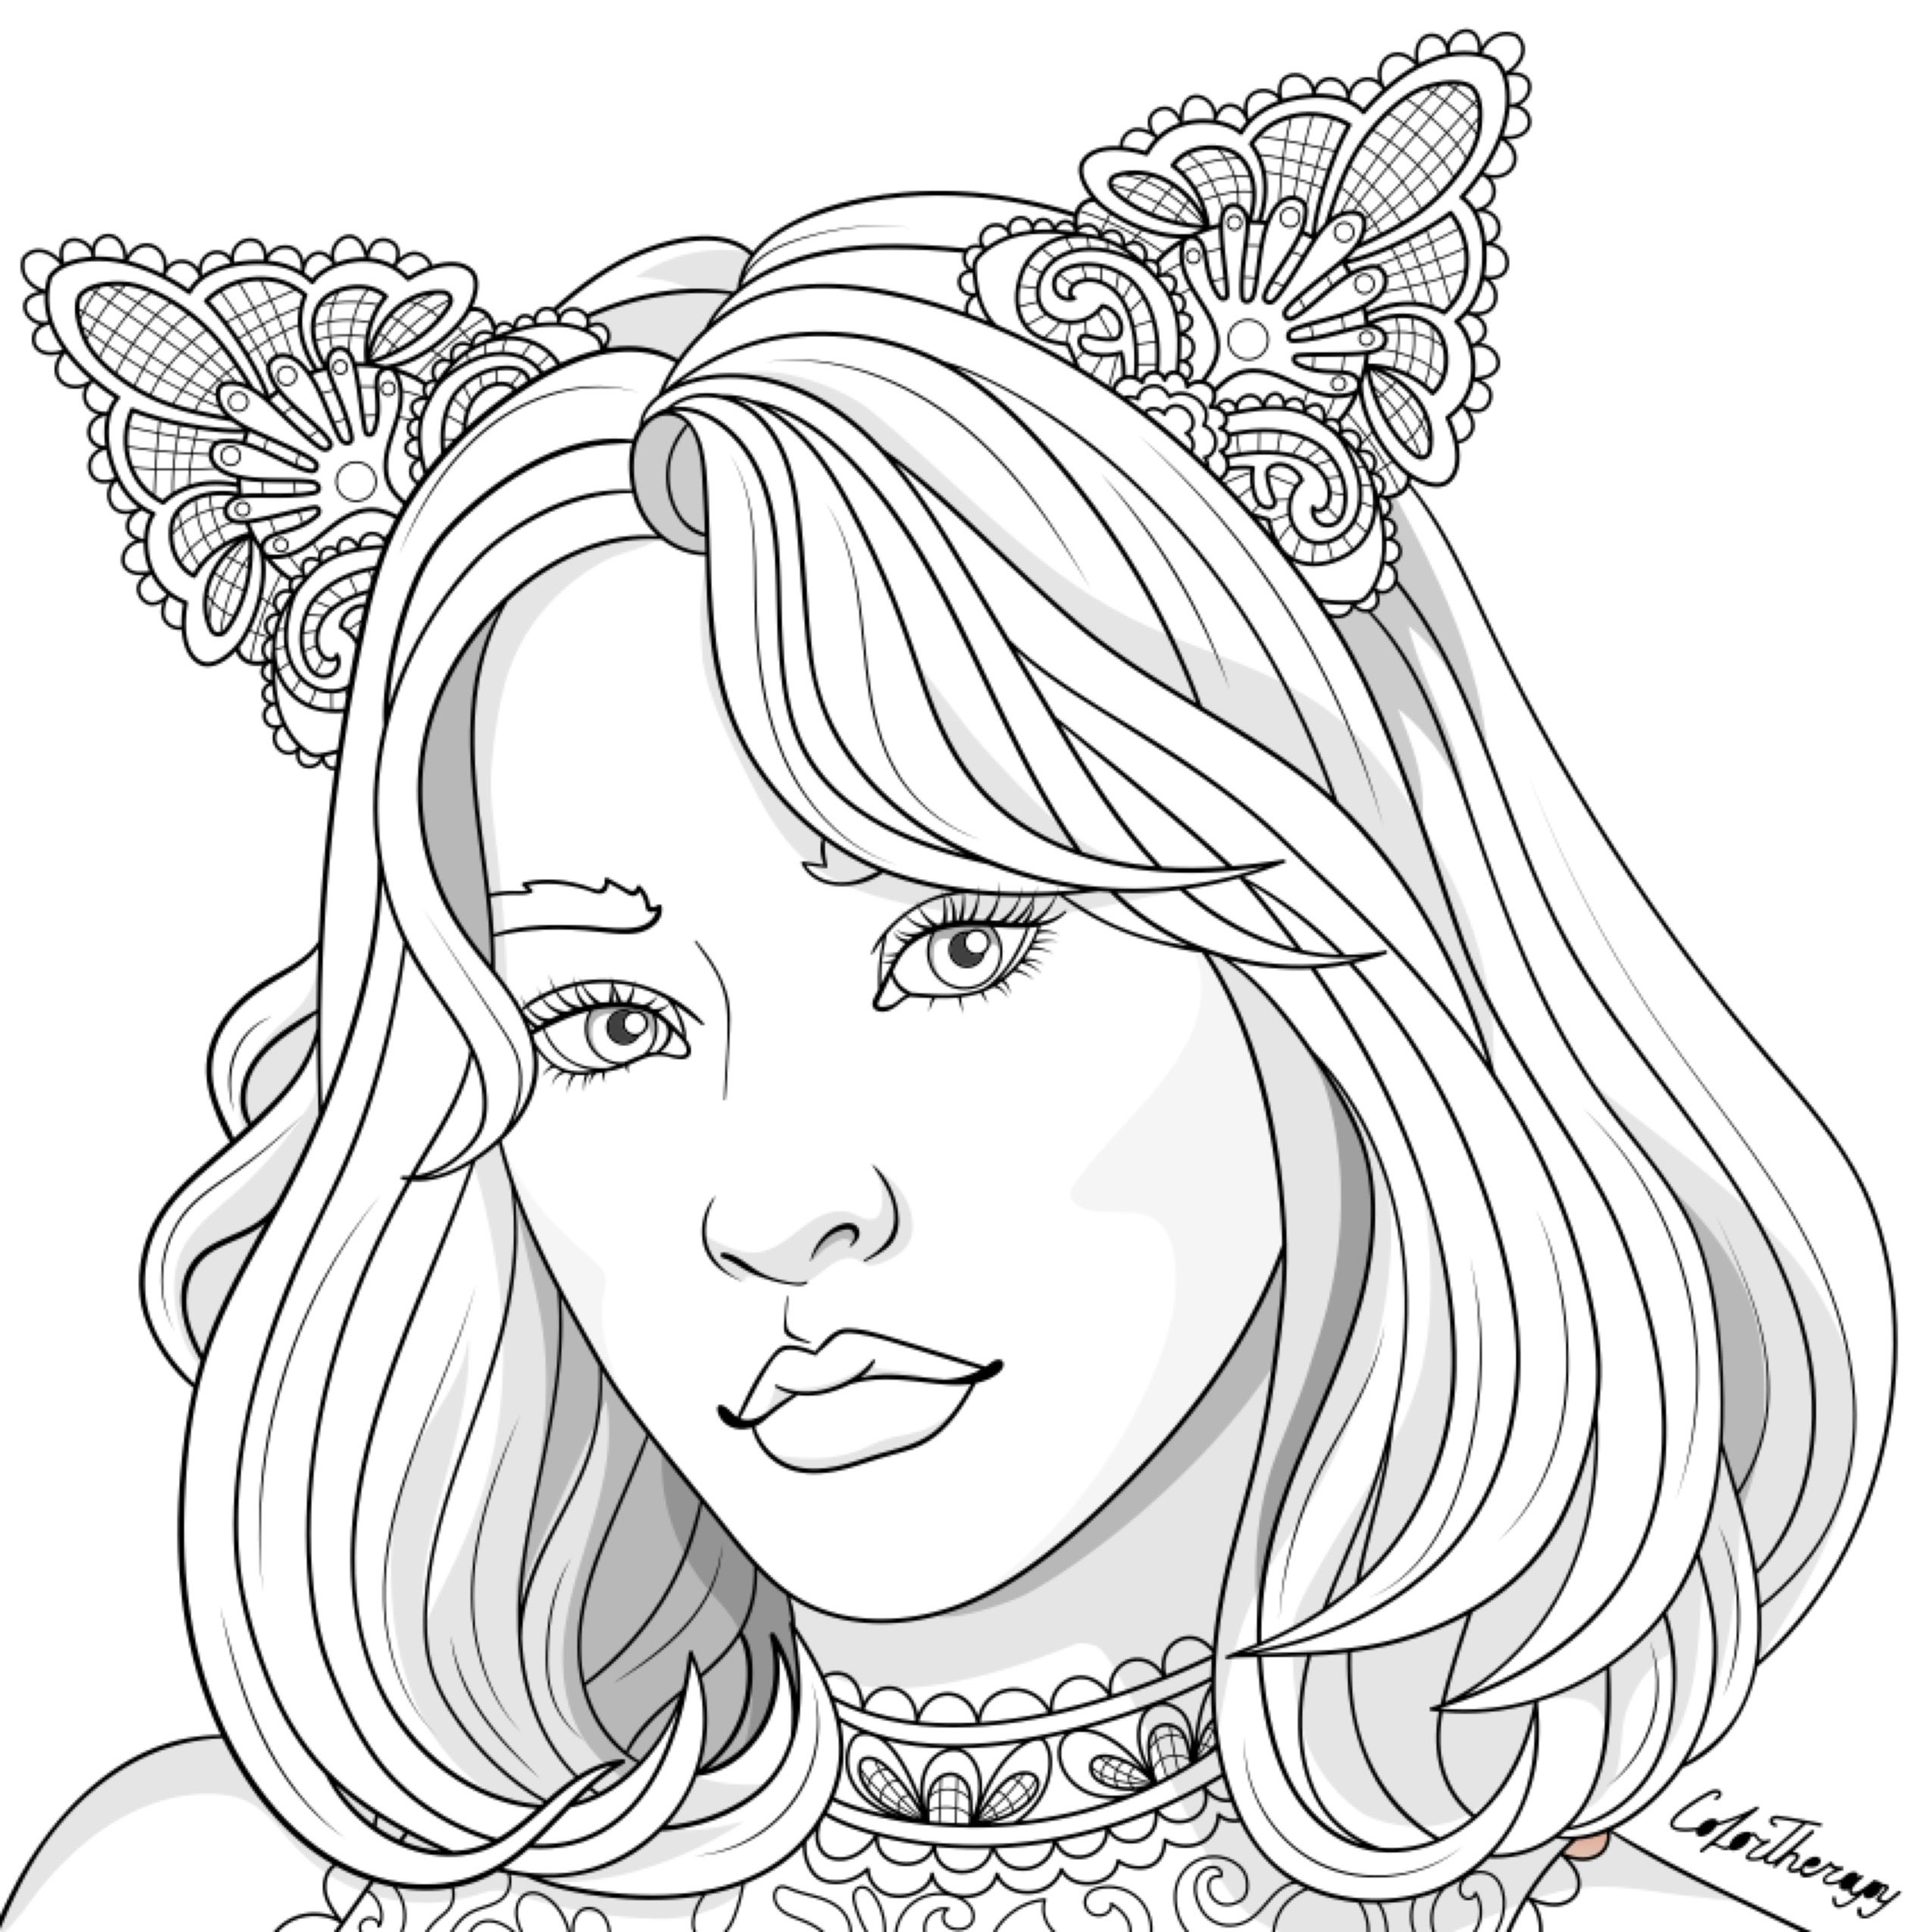 Cute coloring pages image by Nupur Bhatnagar on Devian Art ...